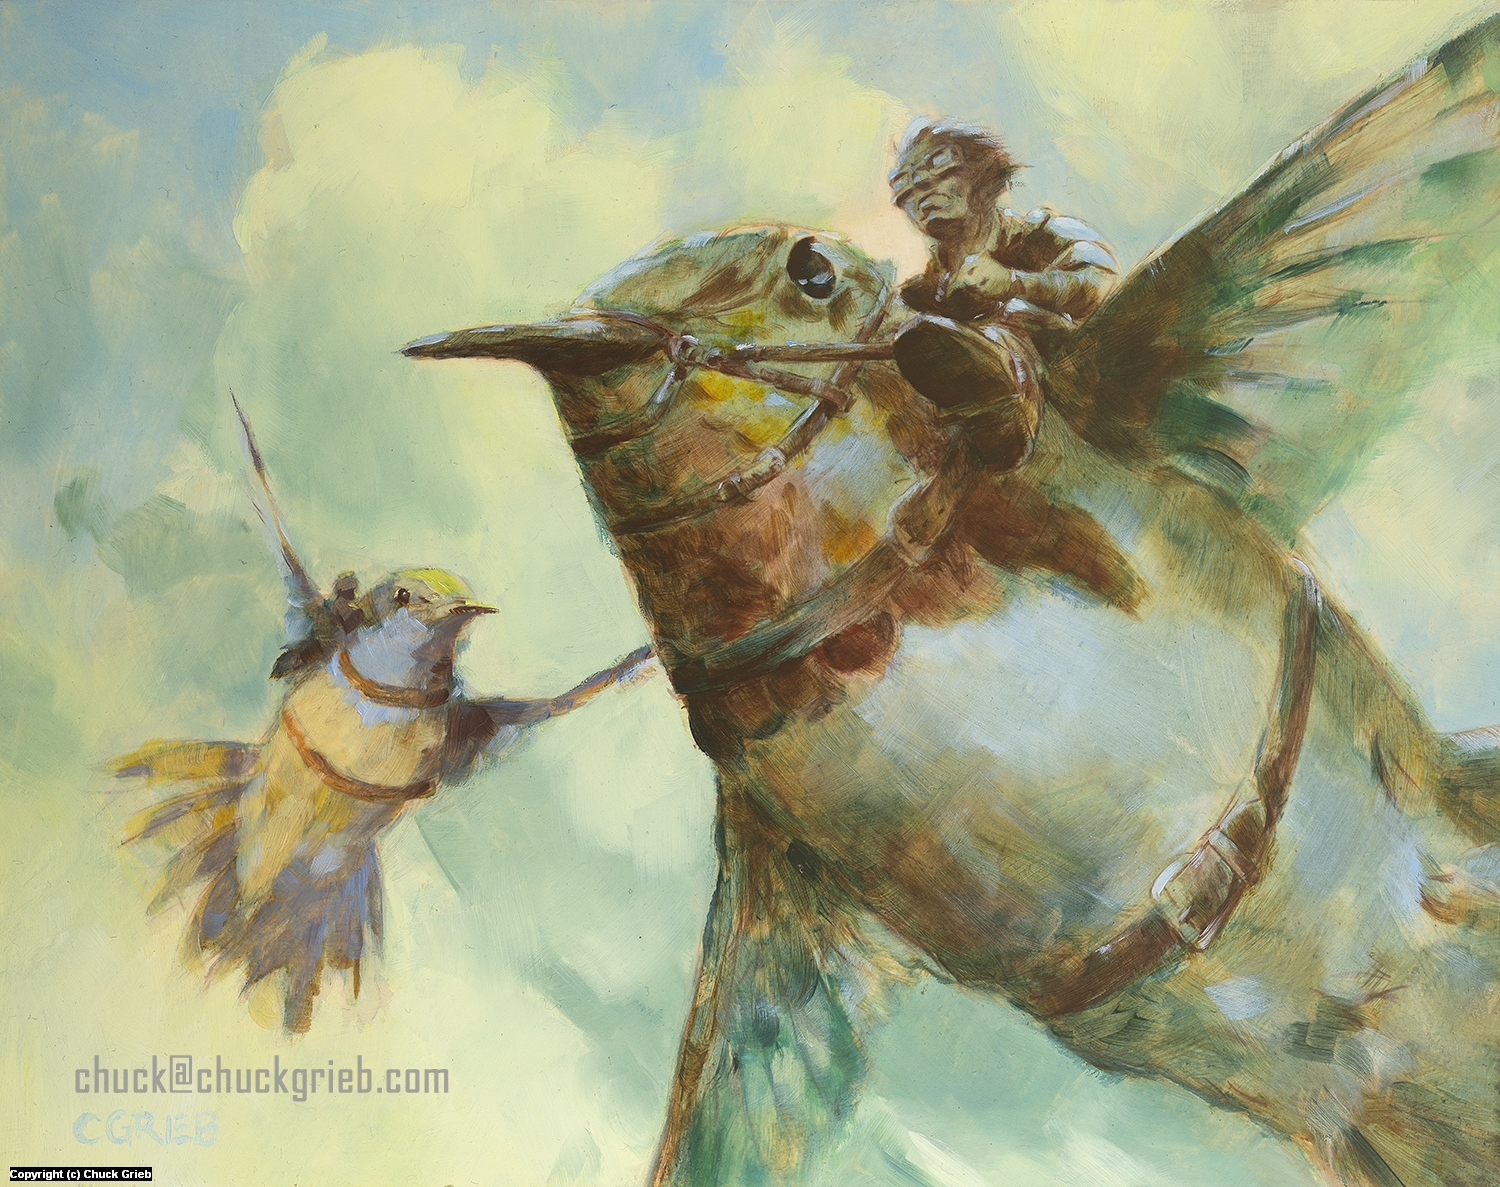 Hummingbird Riders in the Sky Artwork by Chuck Grieb